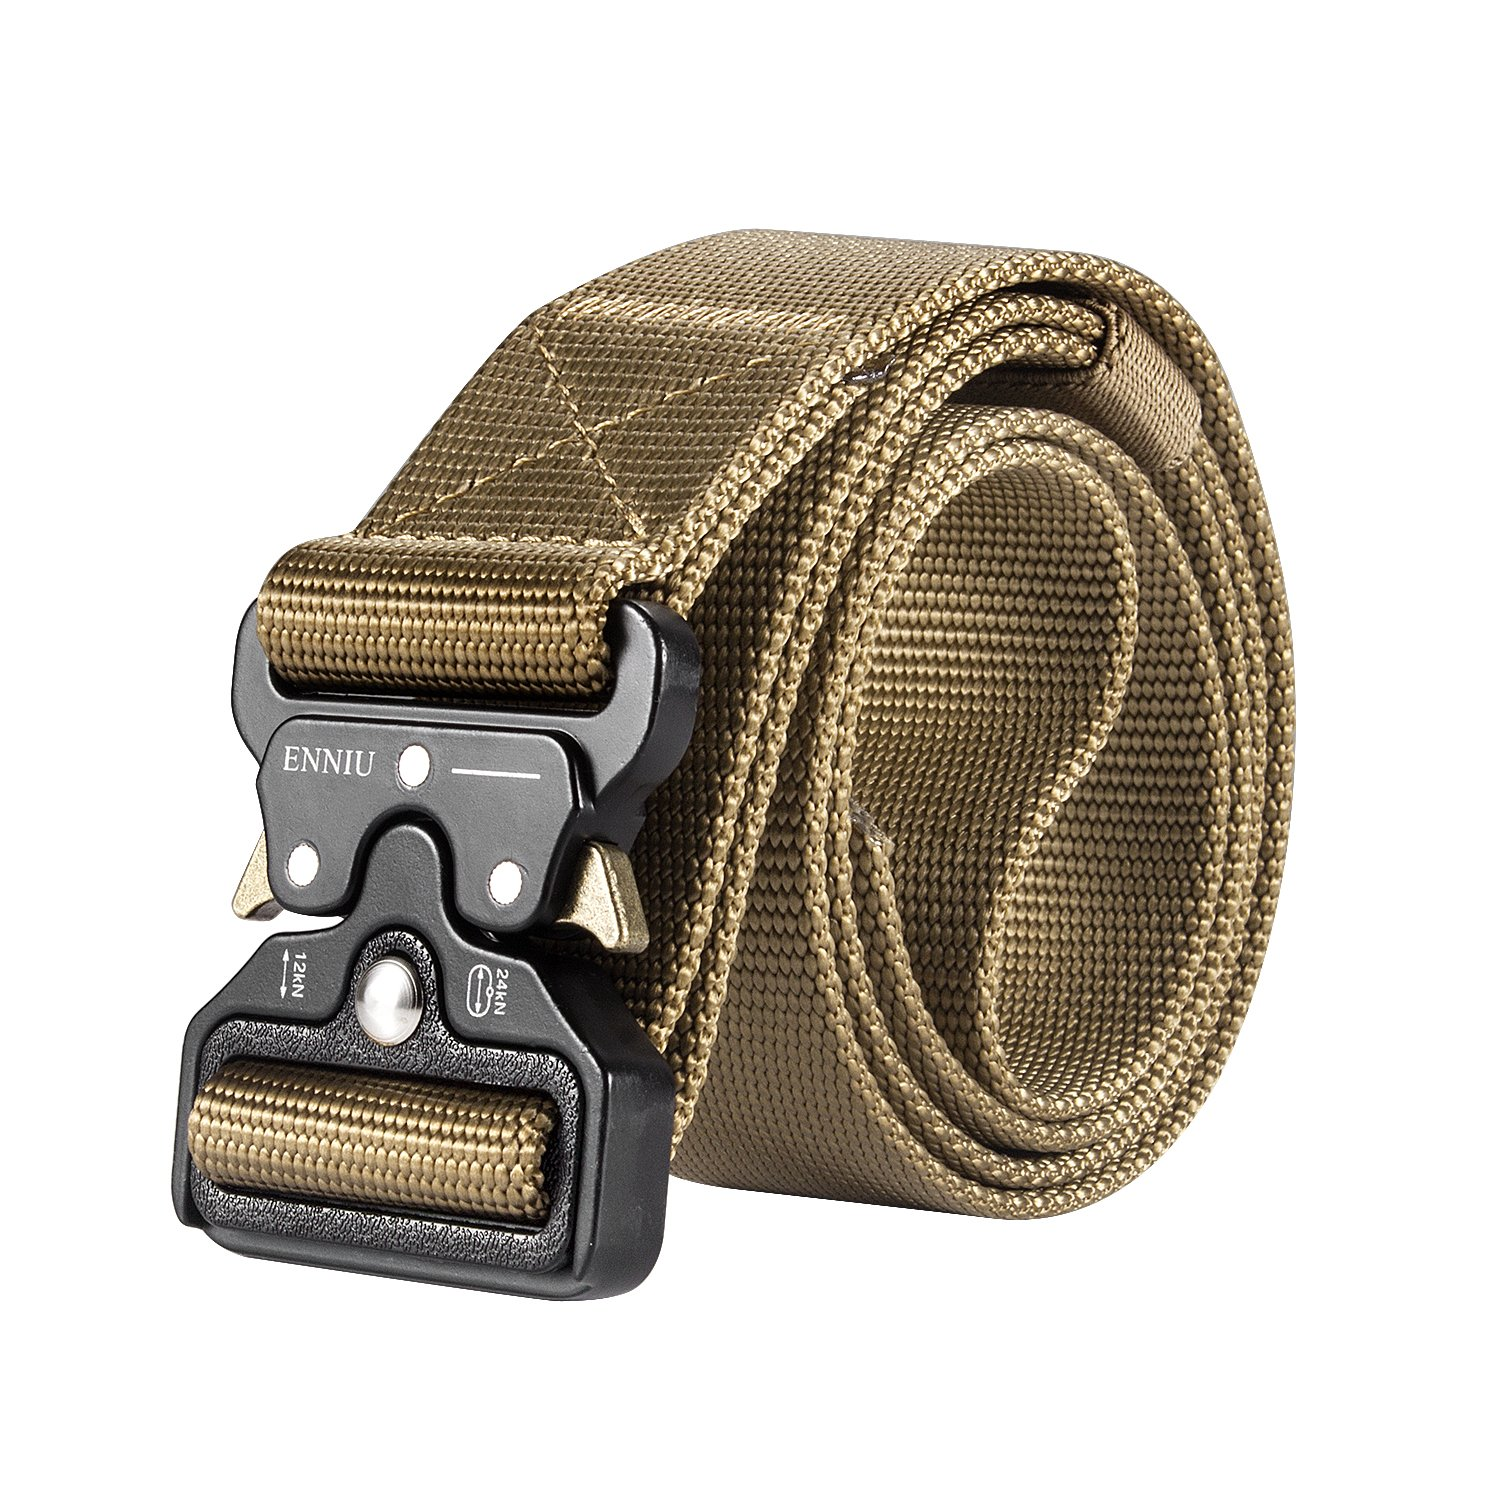 Motusamare Tactical Belt Heavy Duty Military Style Webbing Riggers Web Belt with 1.5